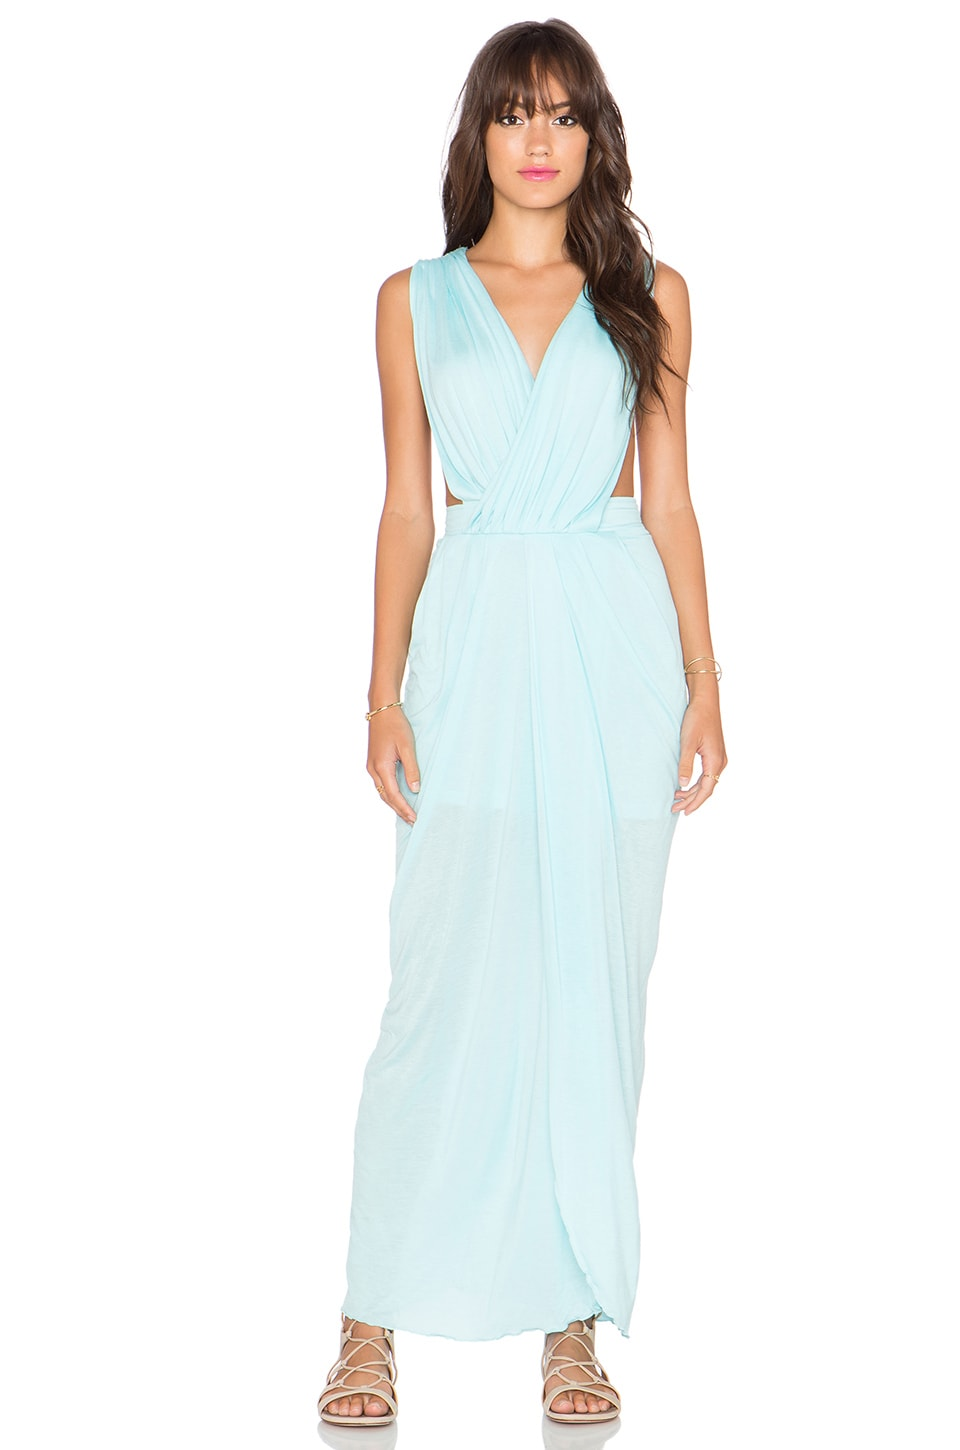 Le Salty Label Allure Grecian Maxi Dress in Mint